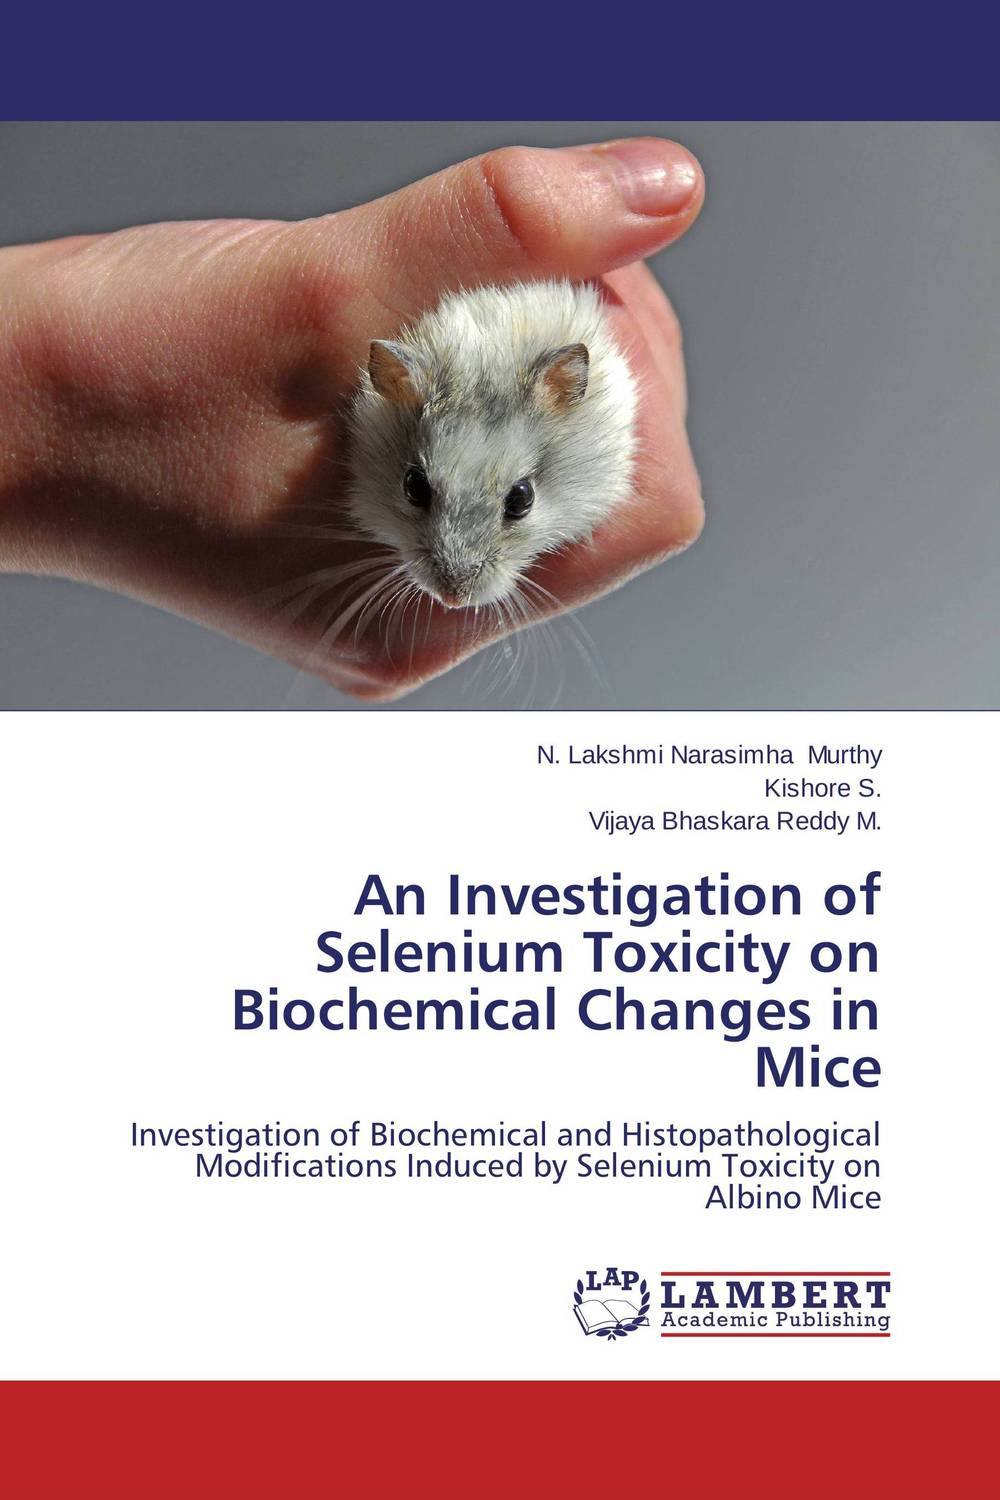 An Investigation of Selenium Toxicity on Biochemical Changes in Mice gaurav kumar singh response of plants to cadmium toxicity